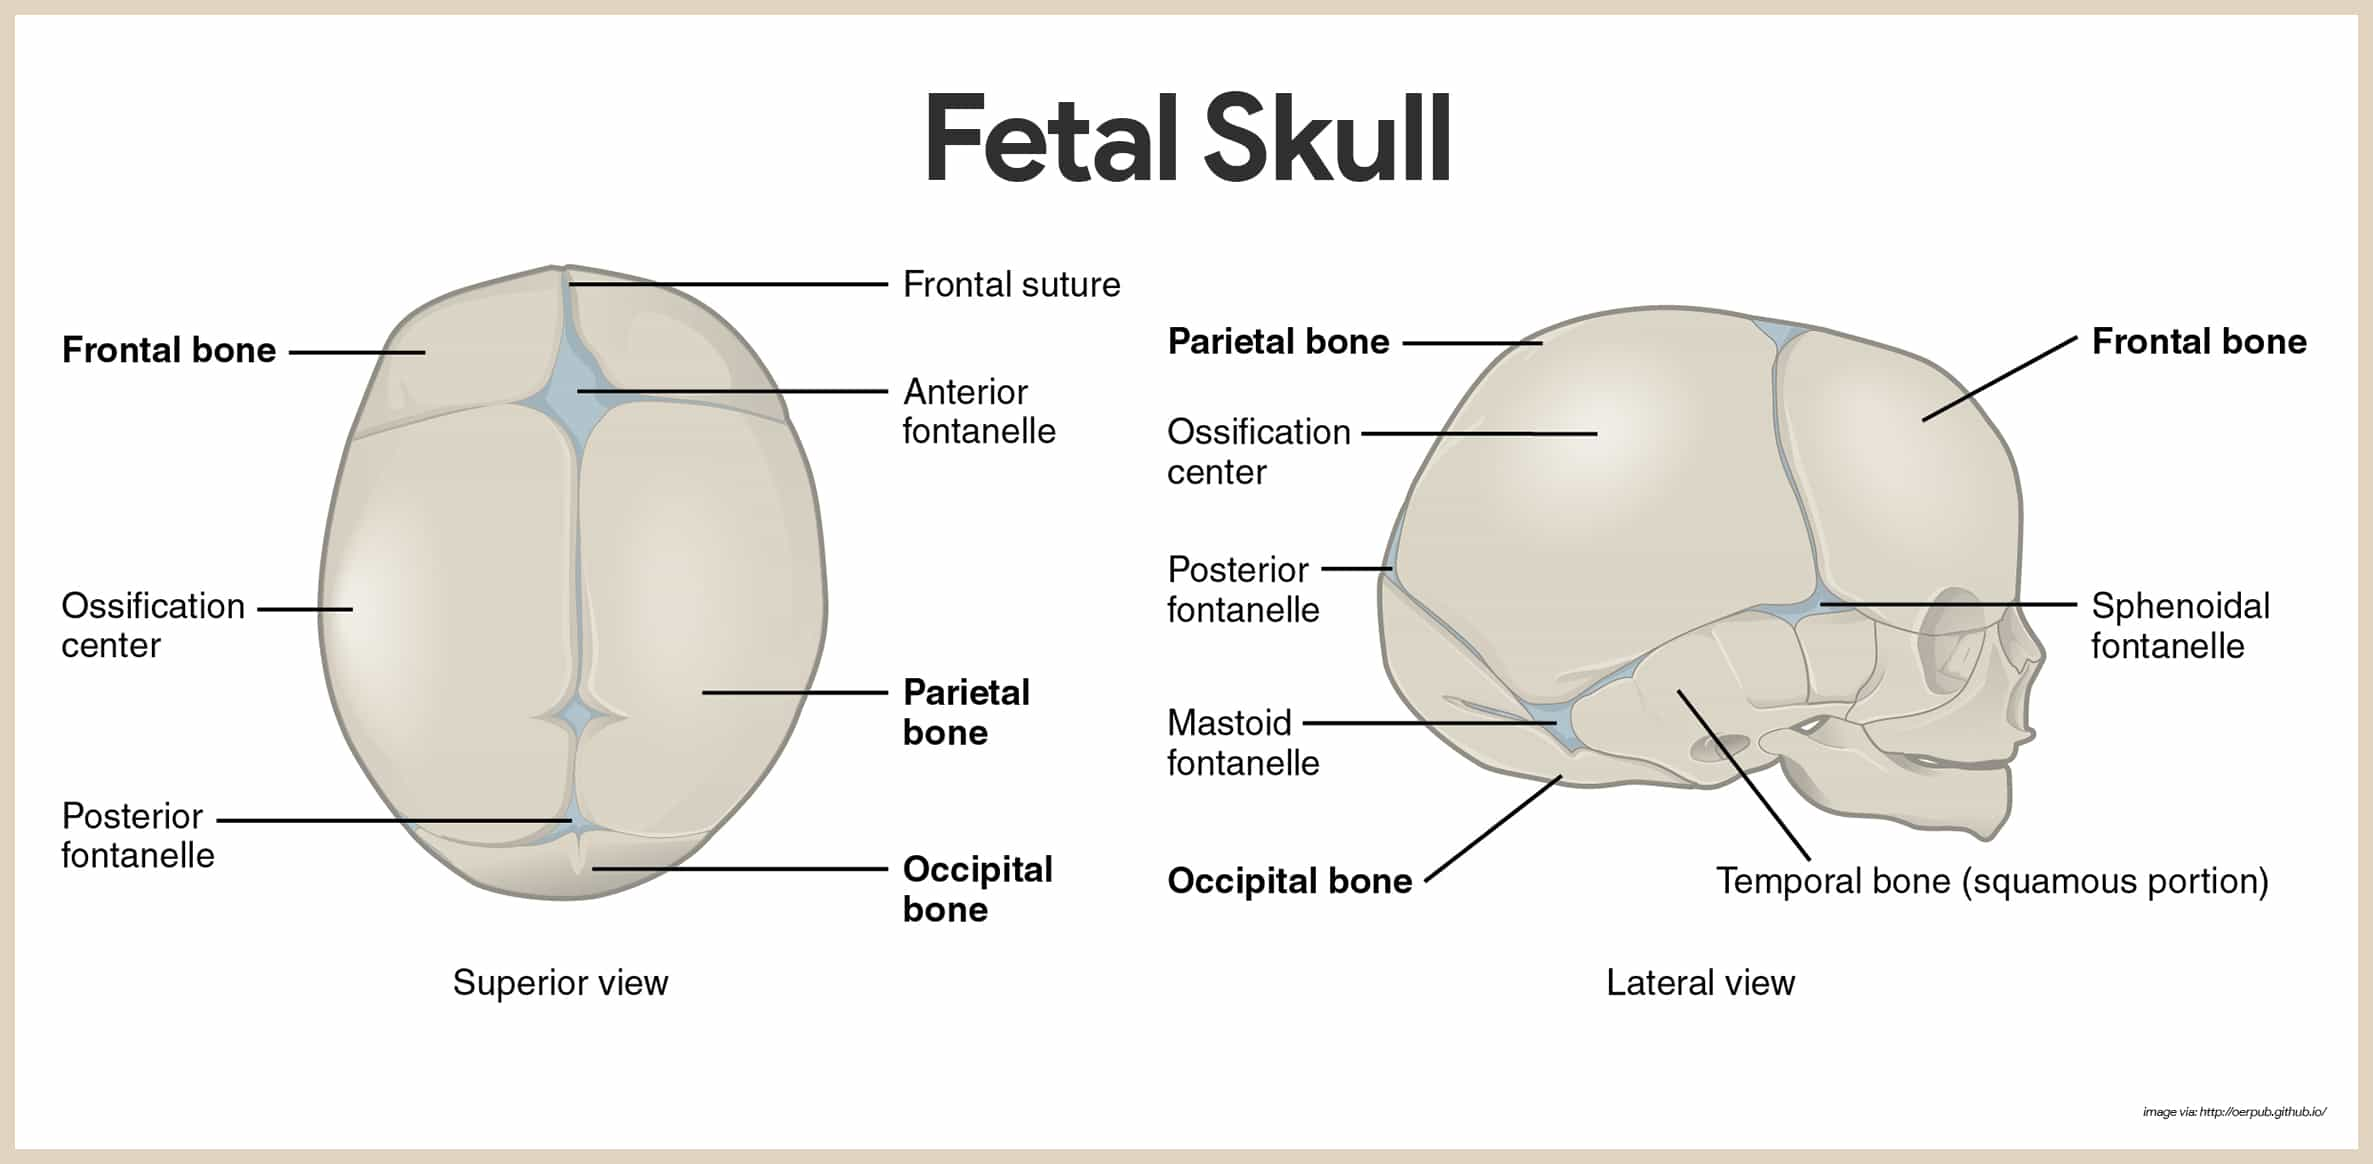 Skeletal System Skull Diagram